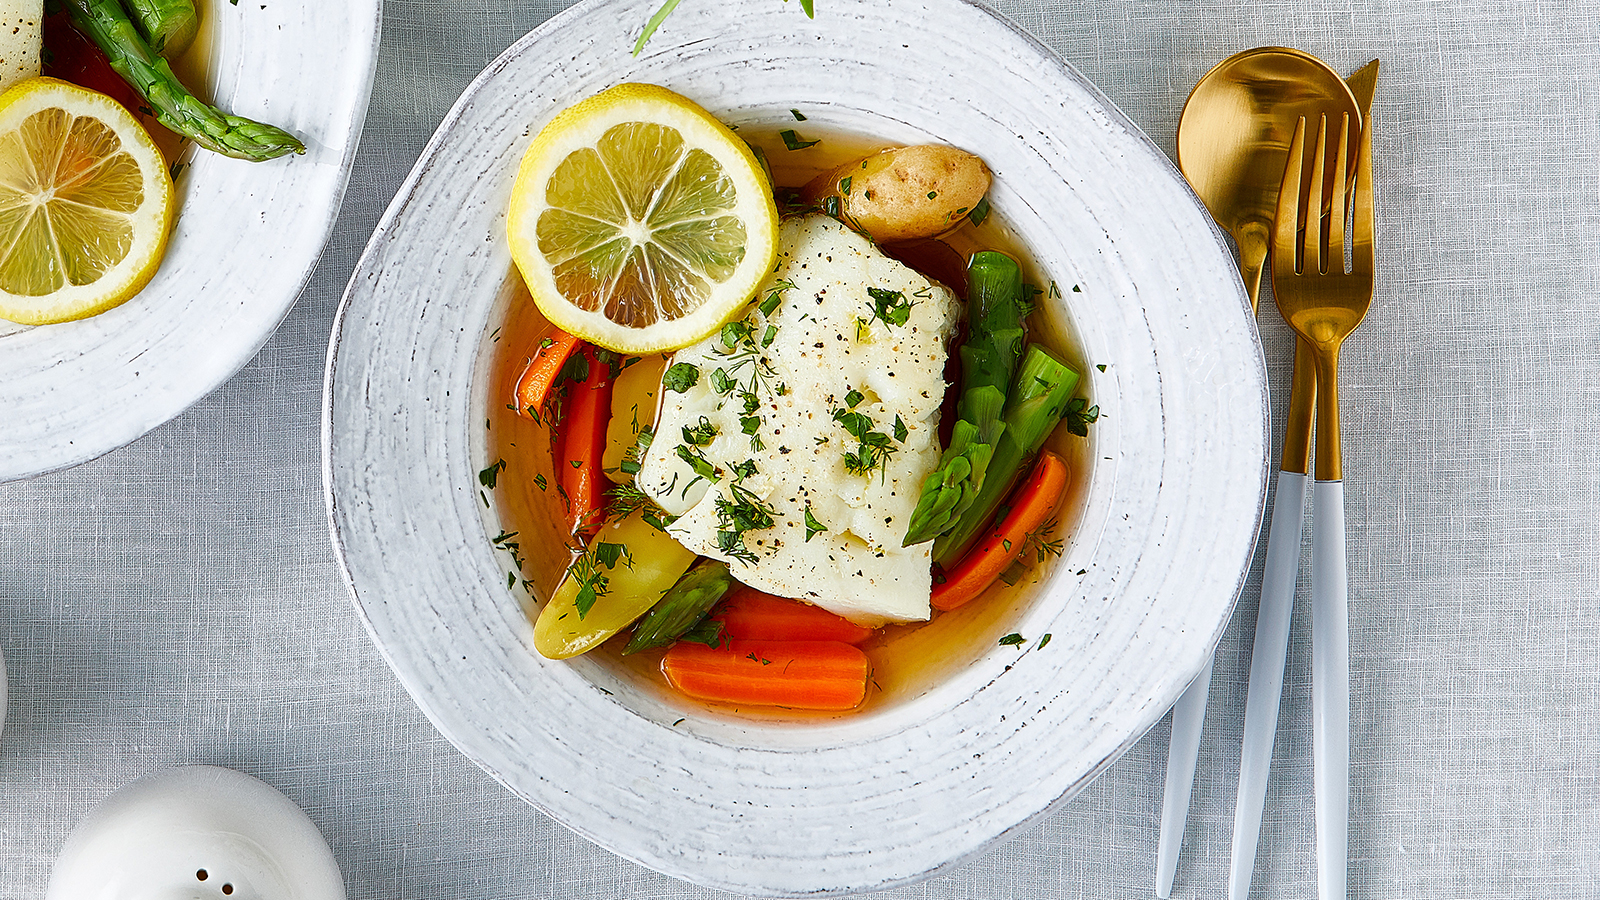 Roasted Cod with Spring Vegetables and Herbs